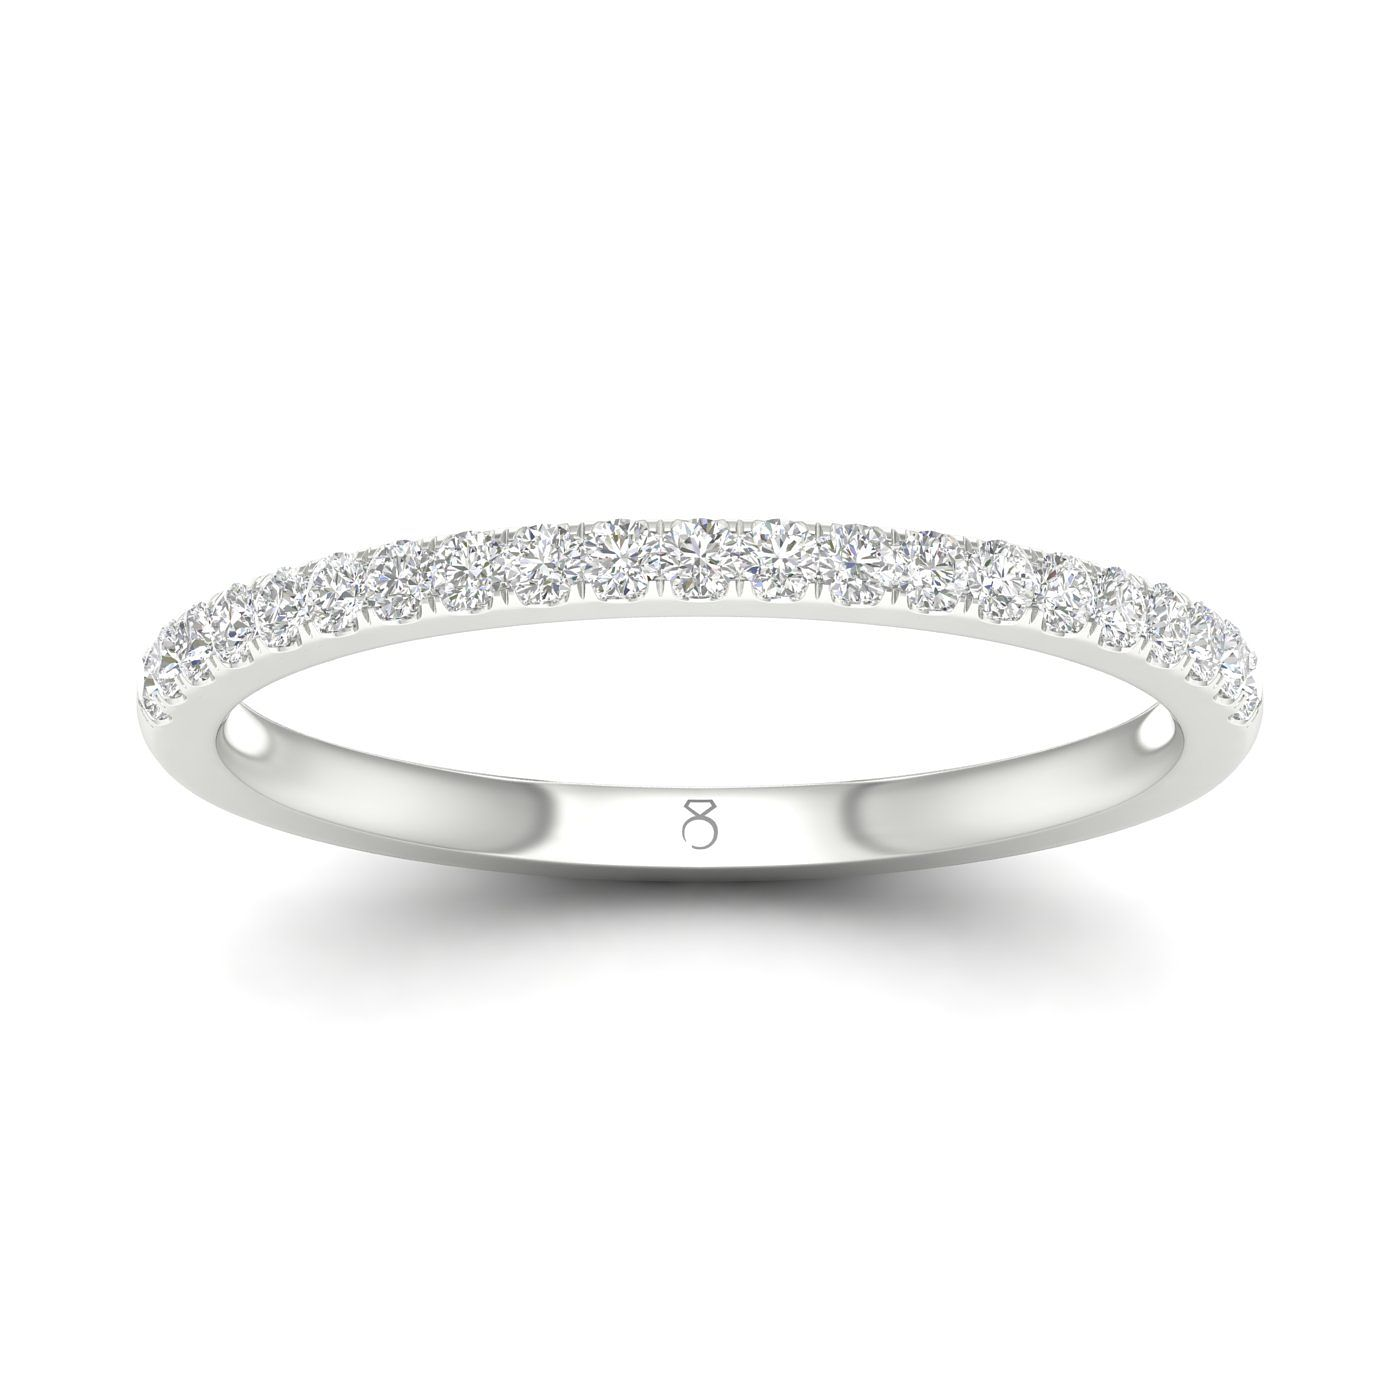 The Diamond Story 18ct White Gold 0.15ct Diamond Ring - Product number 4496248